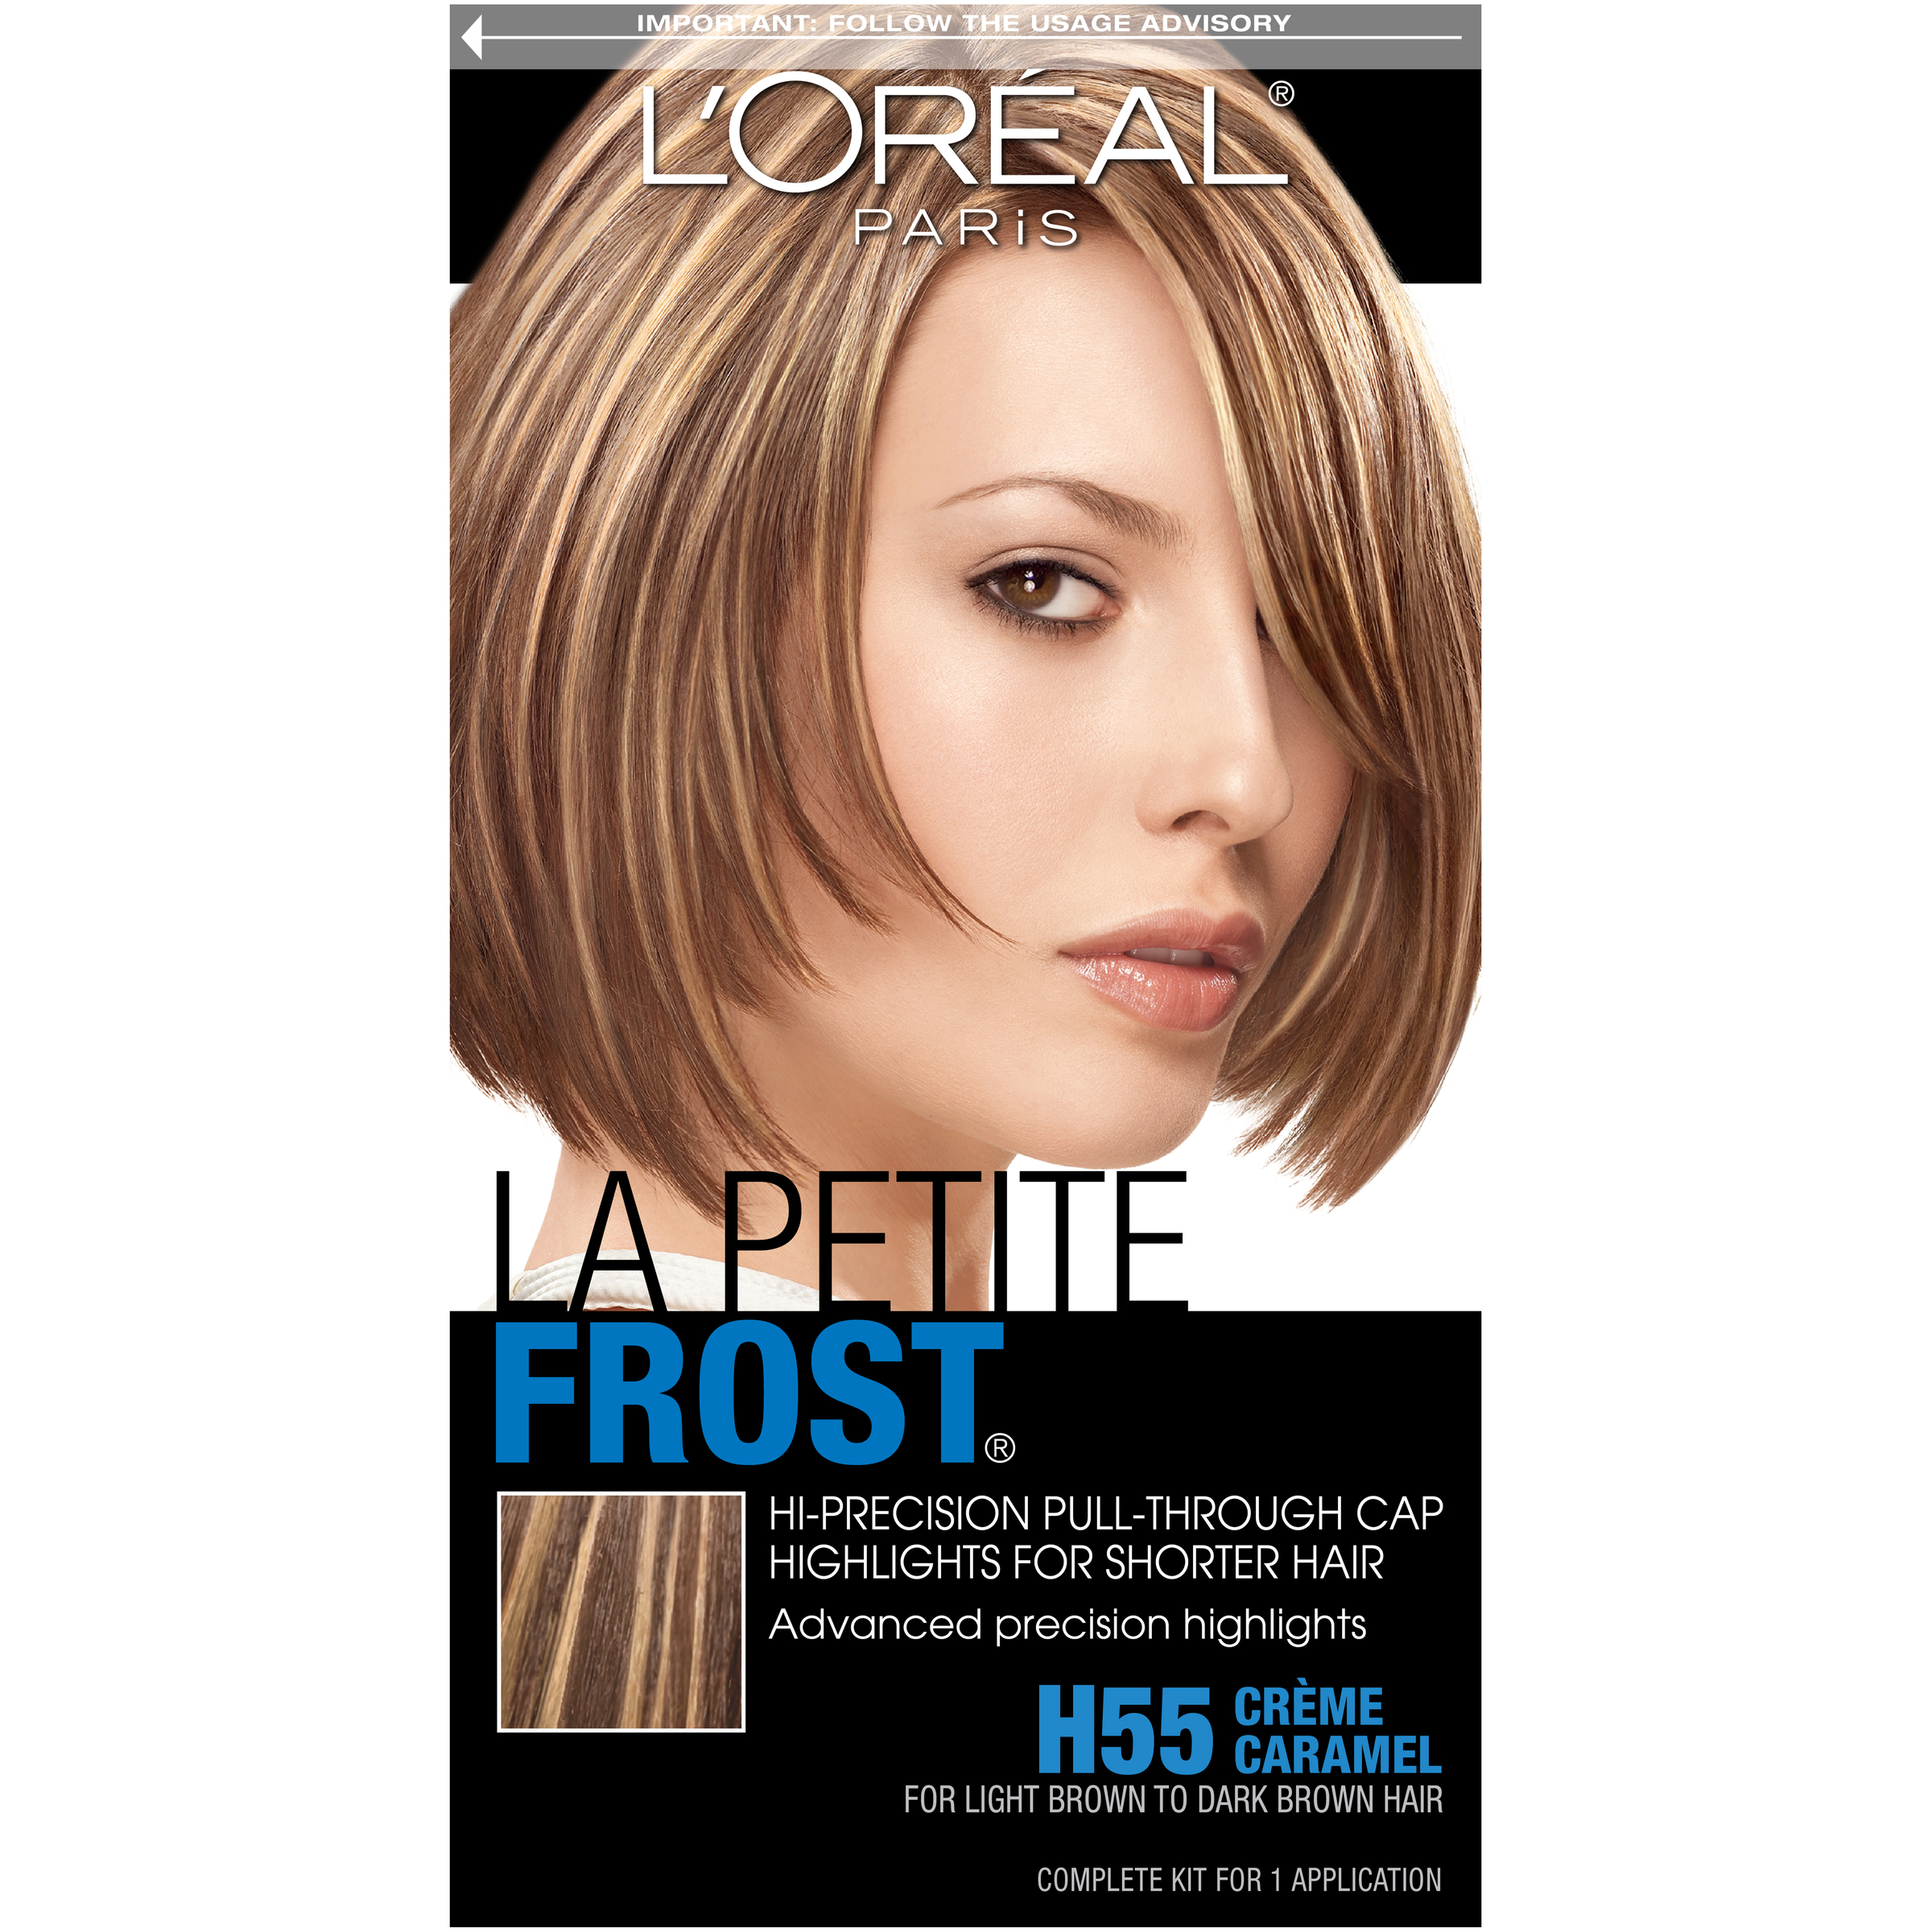 Loreal Paris Sfx Pull Through Cap Highlights La Petite Frost H55